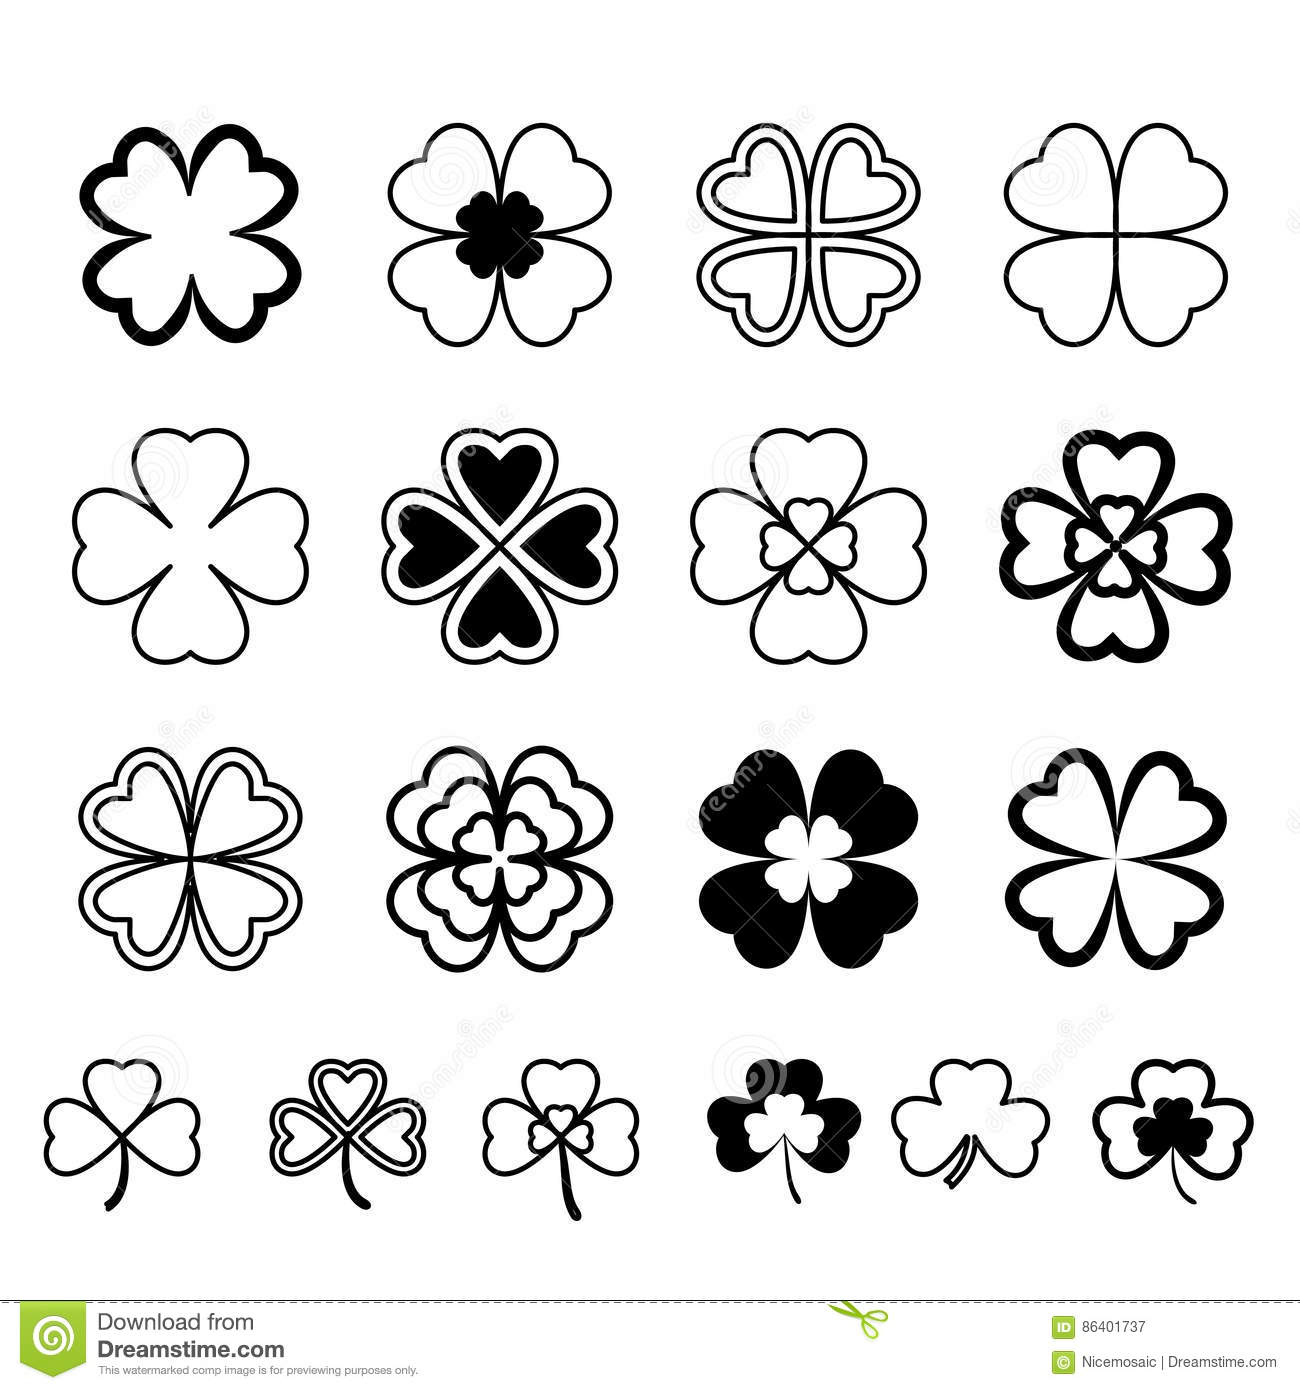 Three Leaf Clover Vector Cartoon Vector